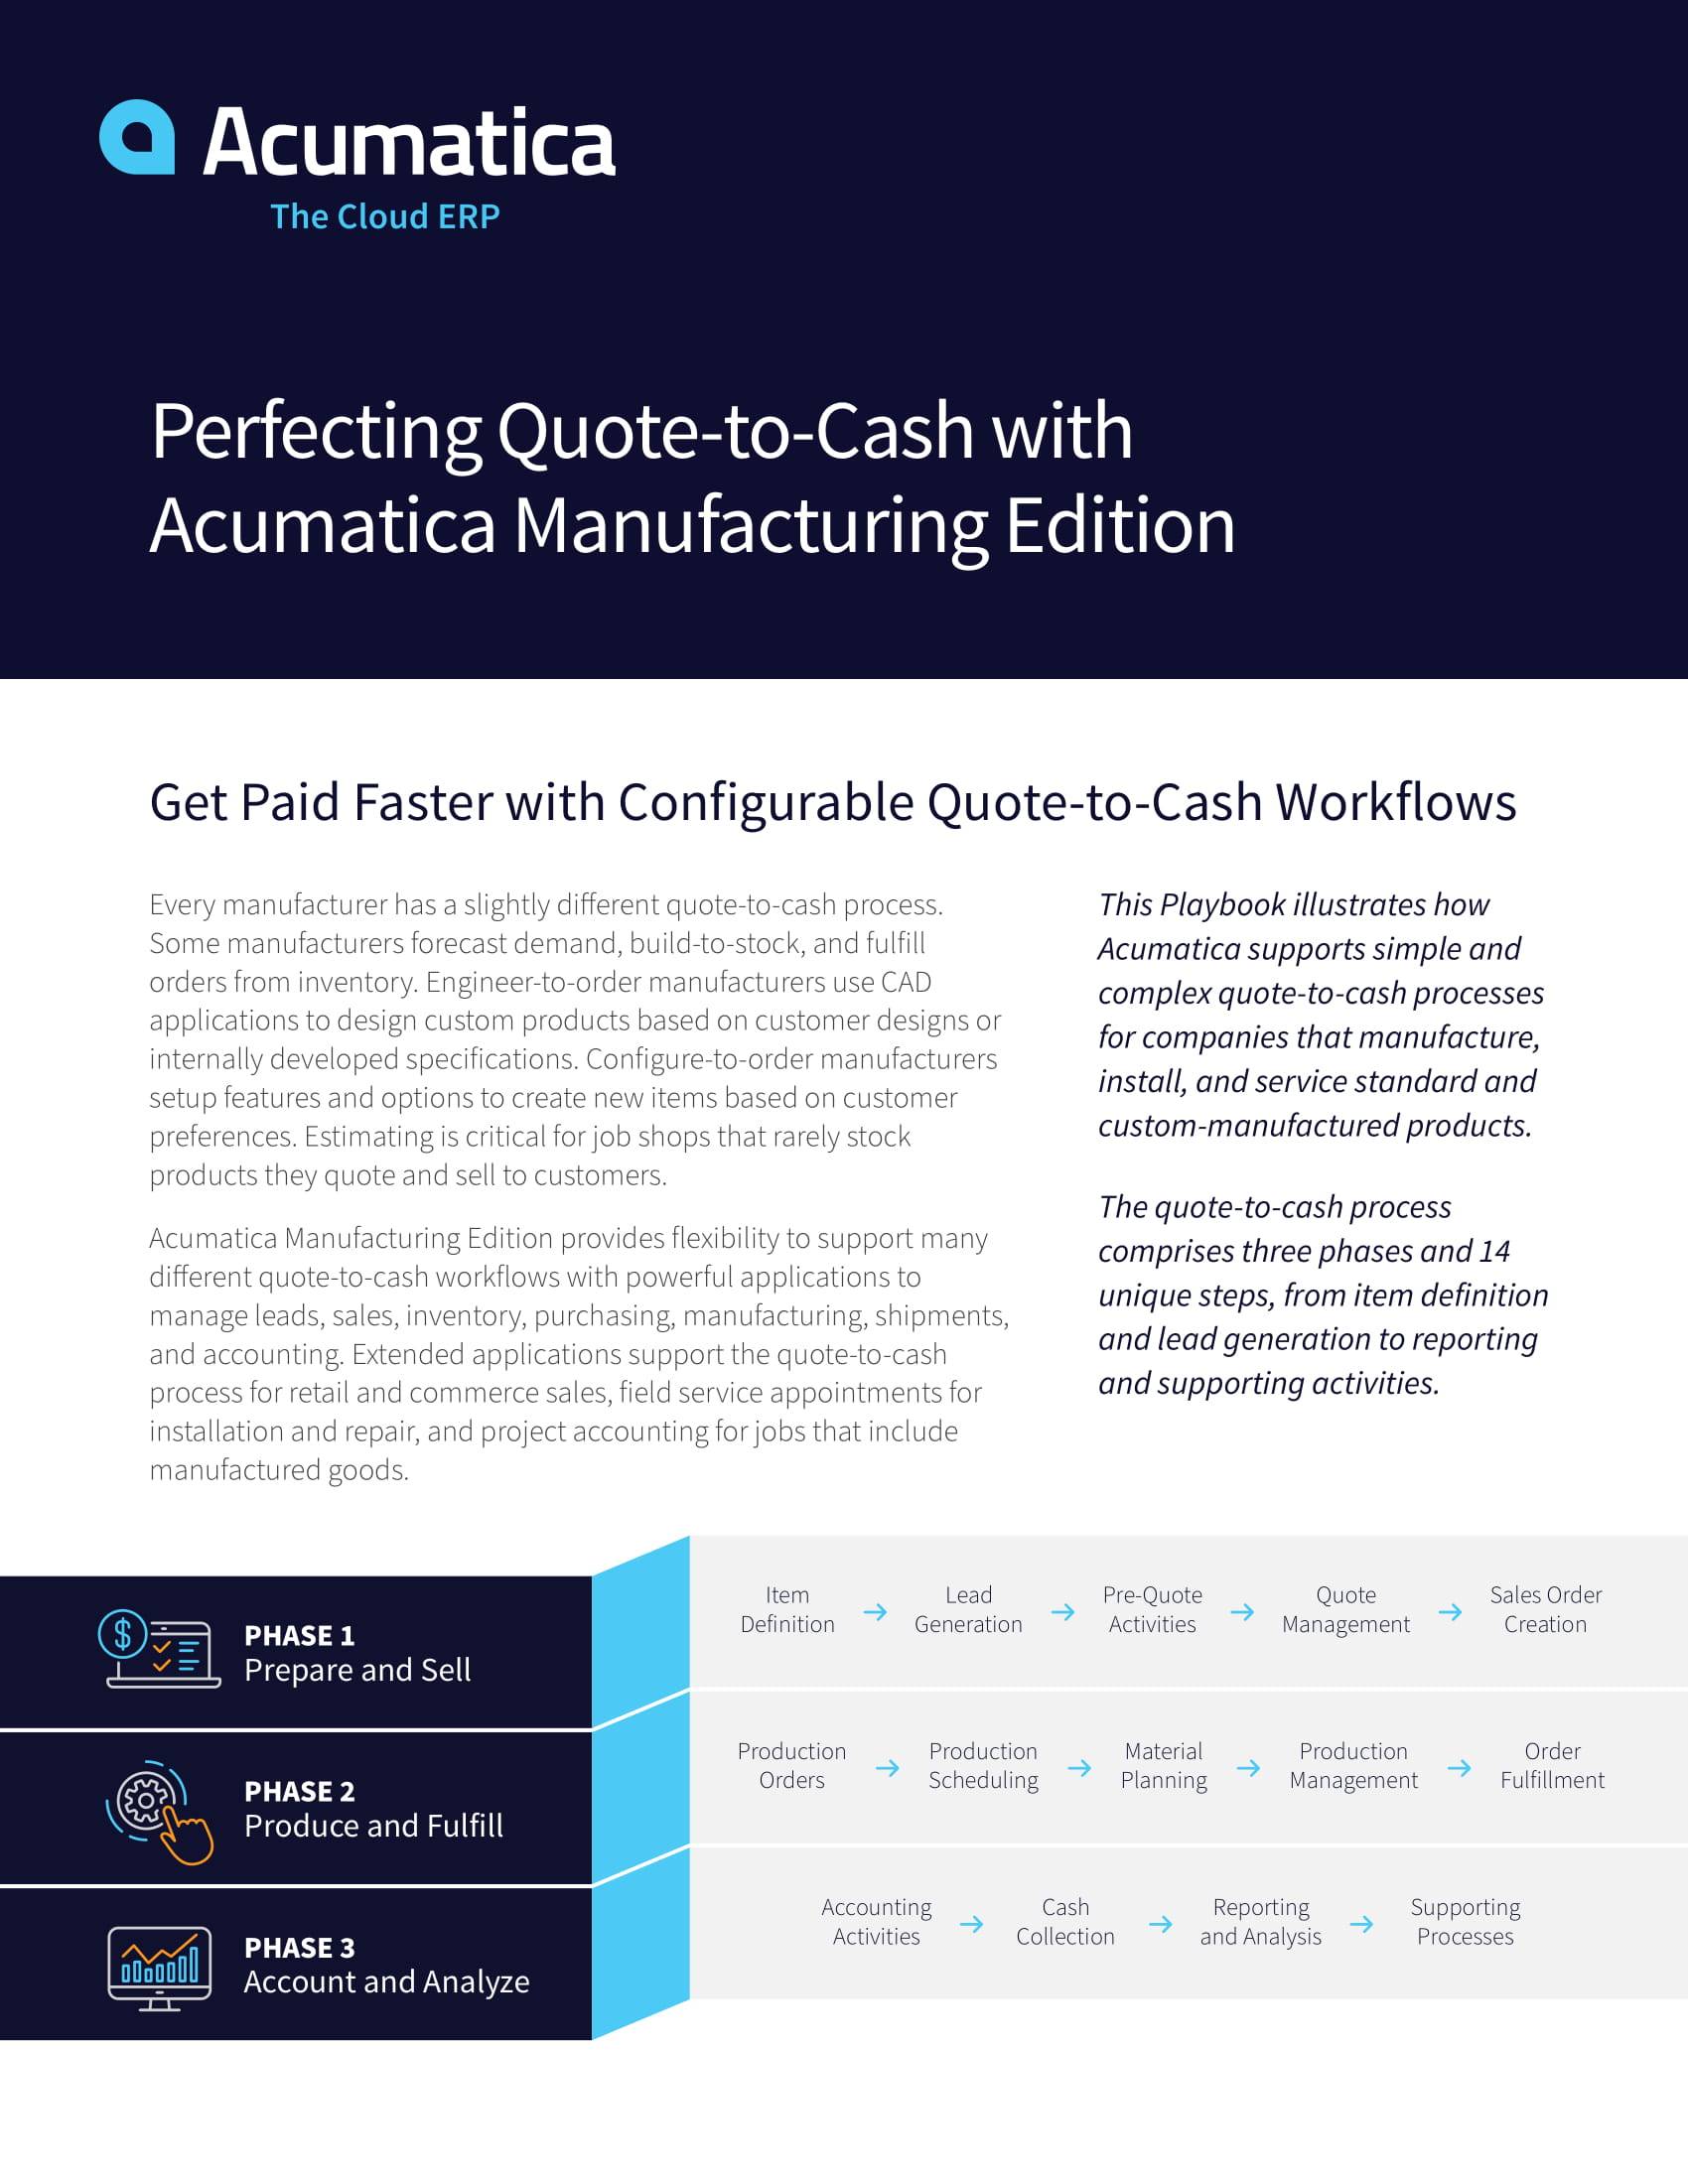 Optimize Your Quote-to-Cash Cycle to Get Paid Faster, page 0